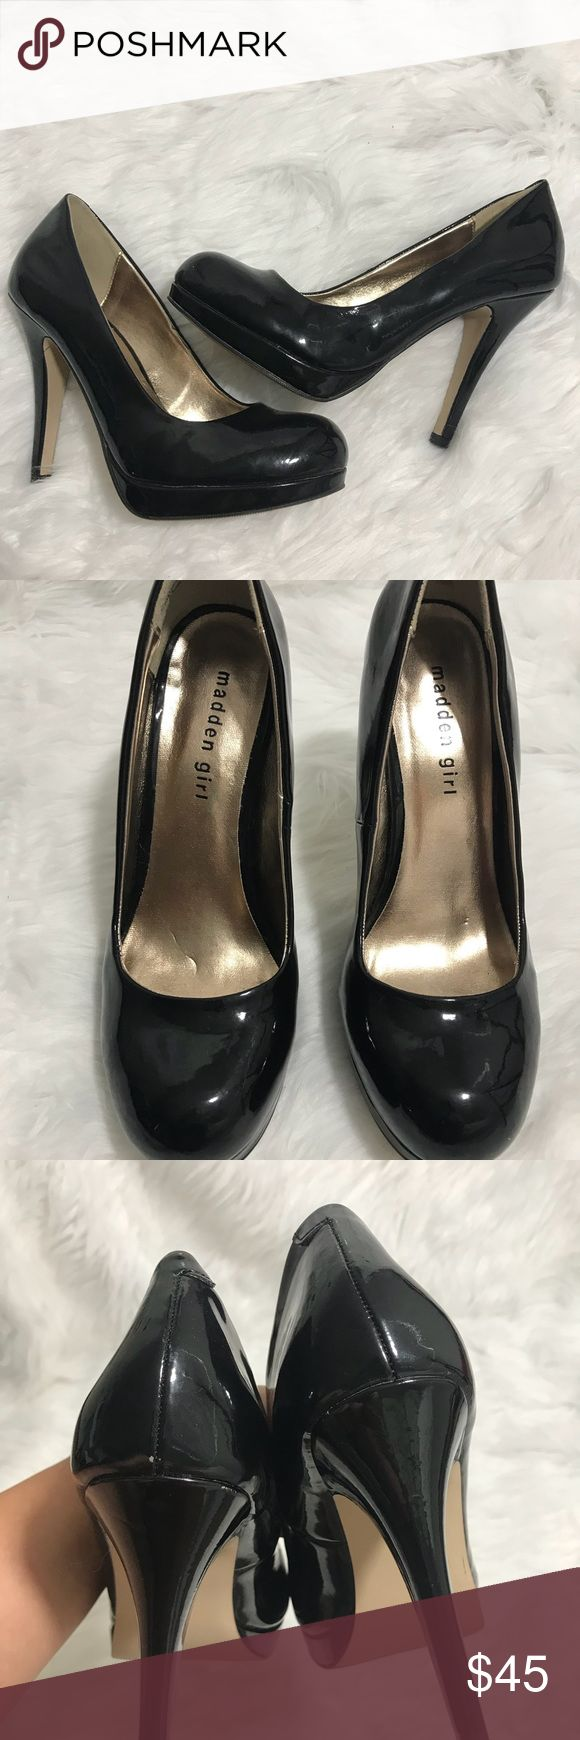 "Madden girl patent pump heels Platform black vegan leather heels. Round toe. Great condition. Approx 5.5"" heel, platform.5"". Normal wear and tear . 1007 Steve Madden Shoes Heels"